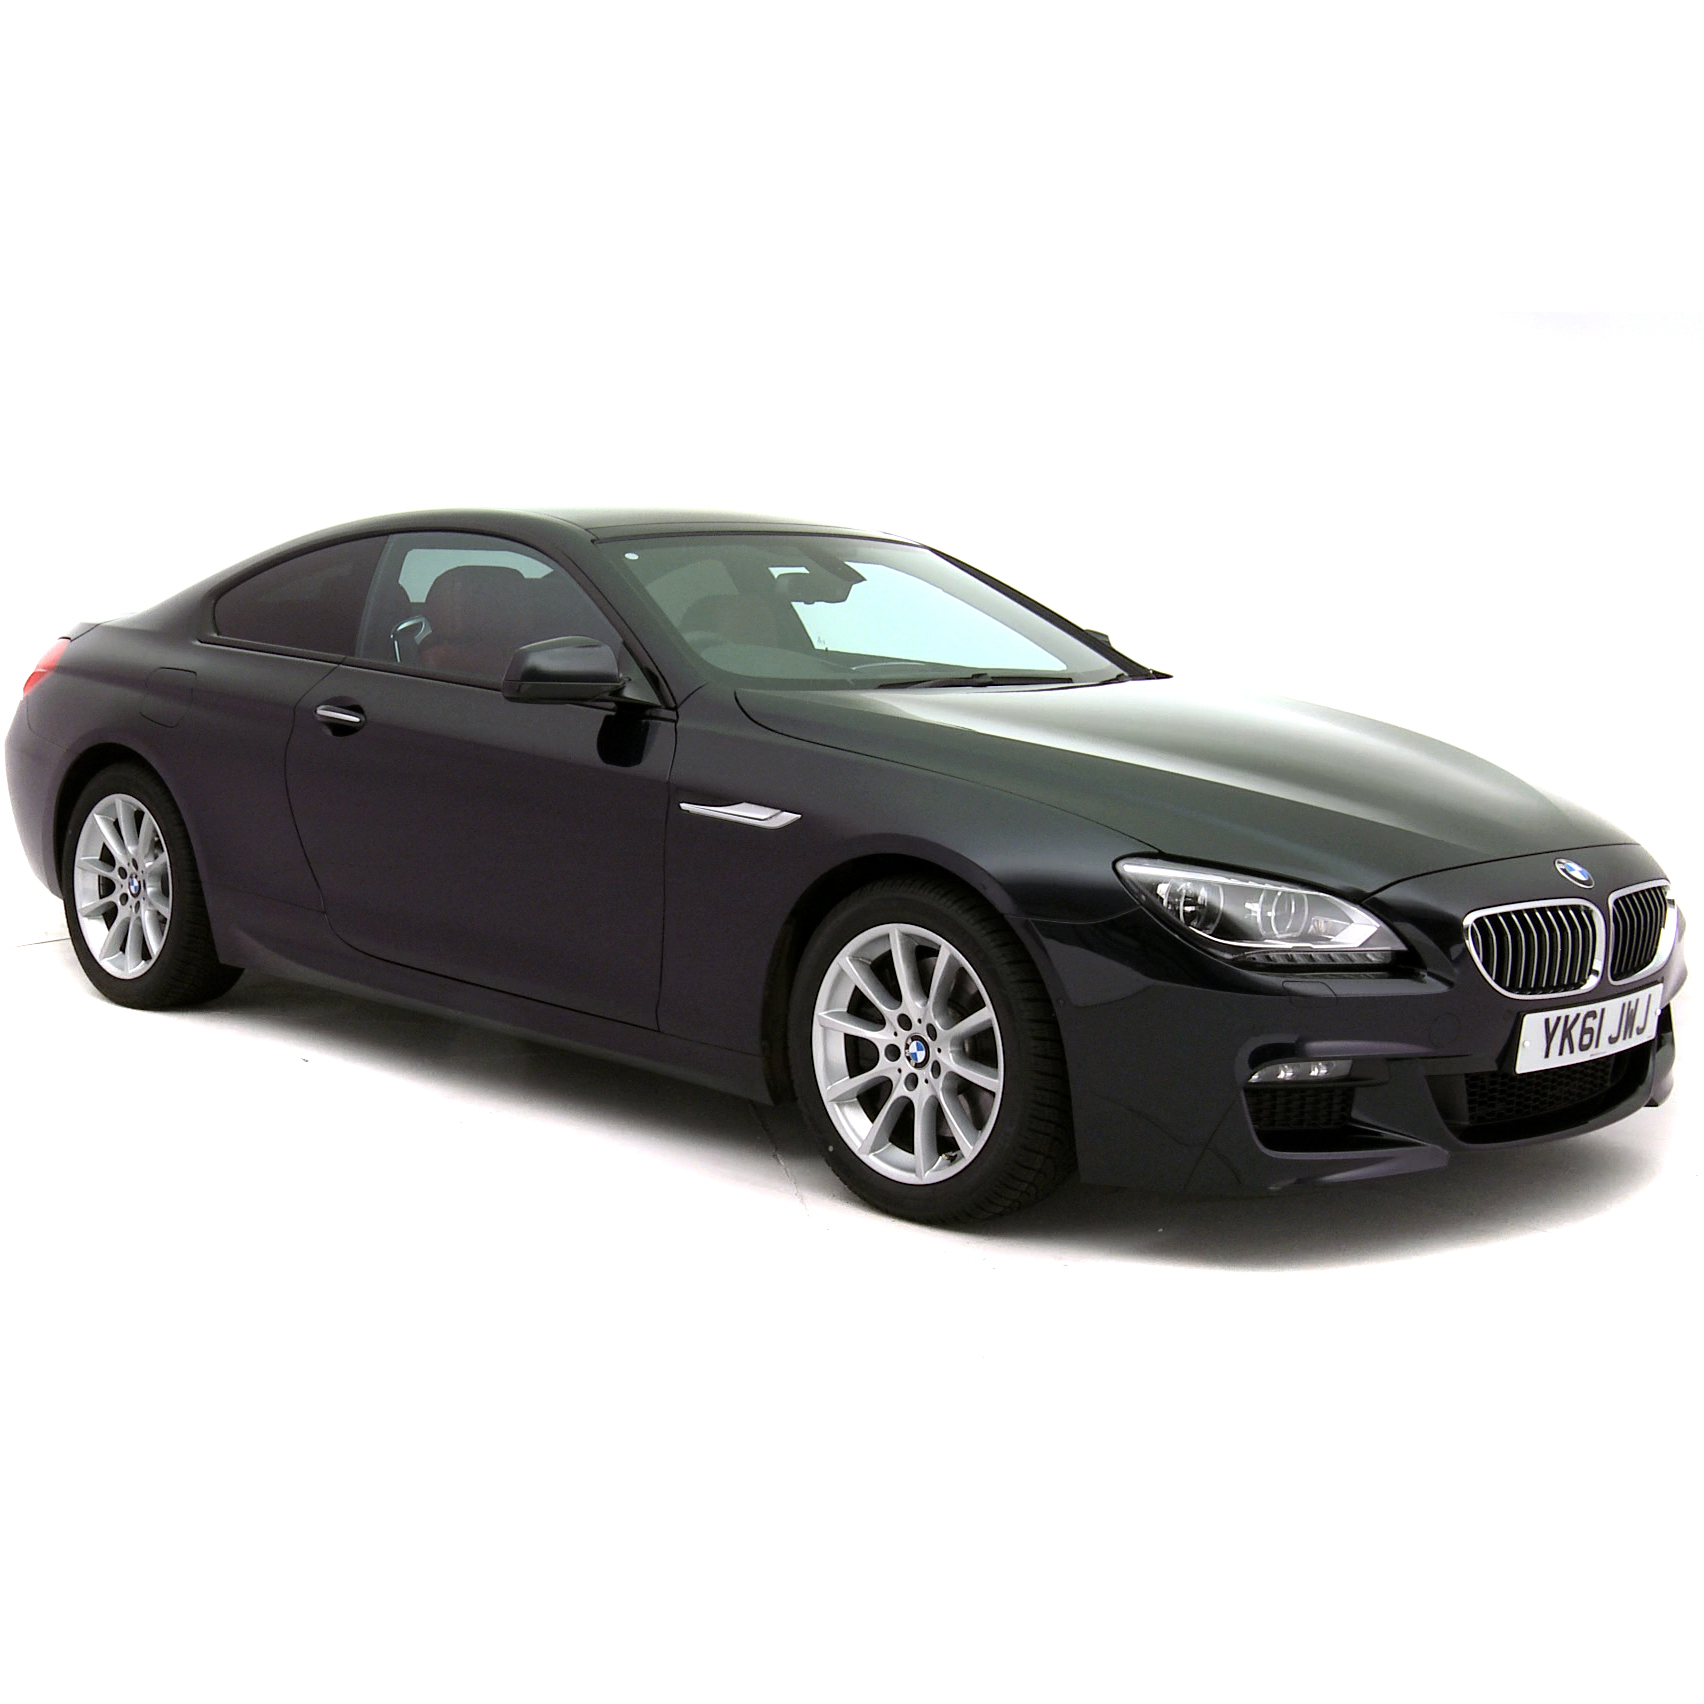 BMW 6 Series (Coupe & Convertible) 2011 - 2017